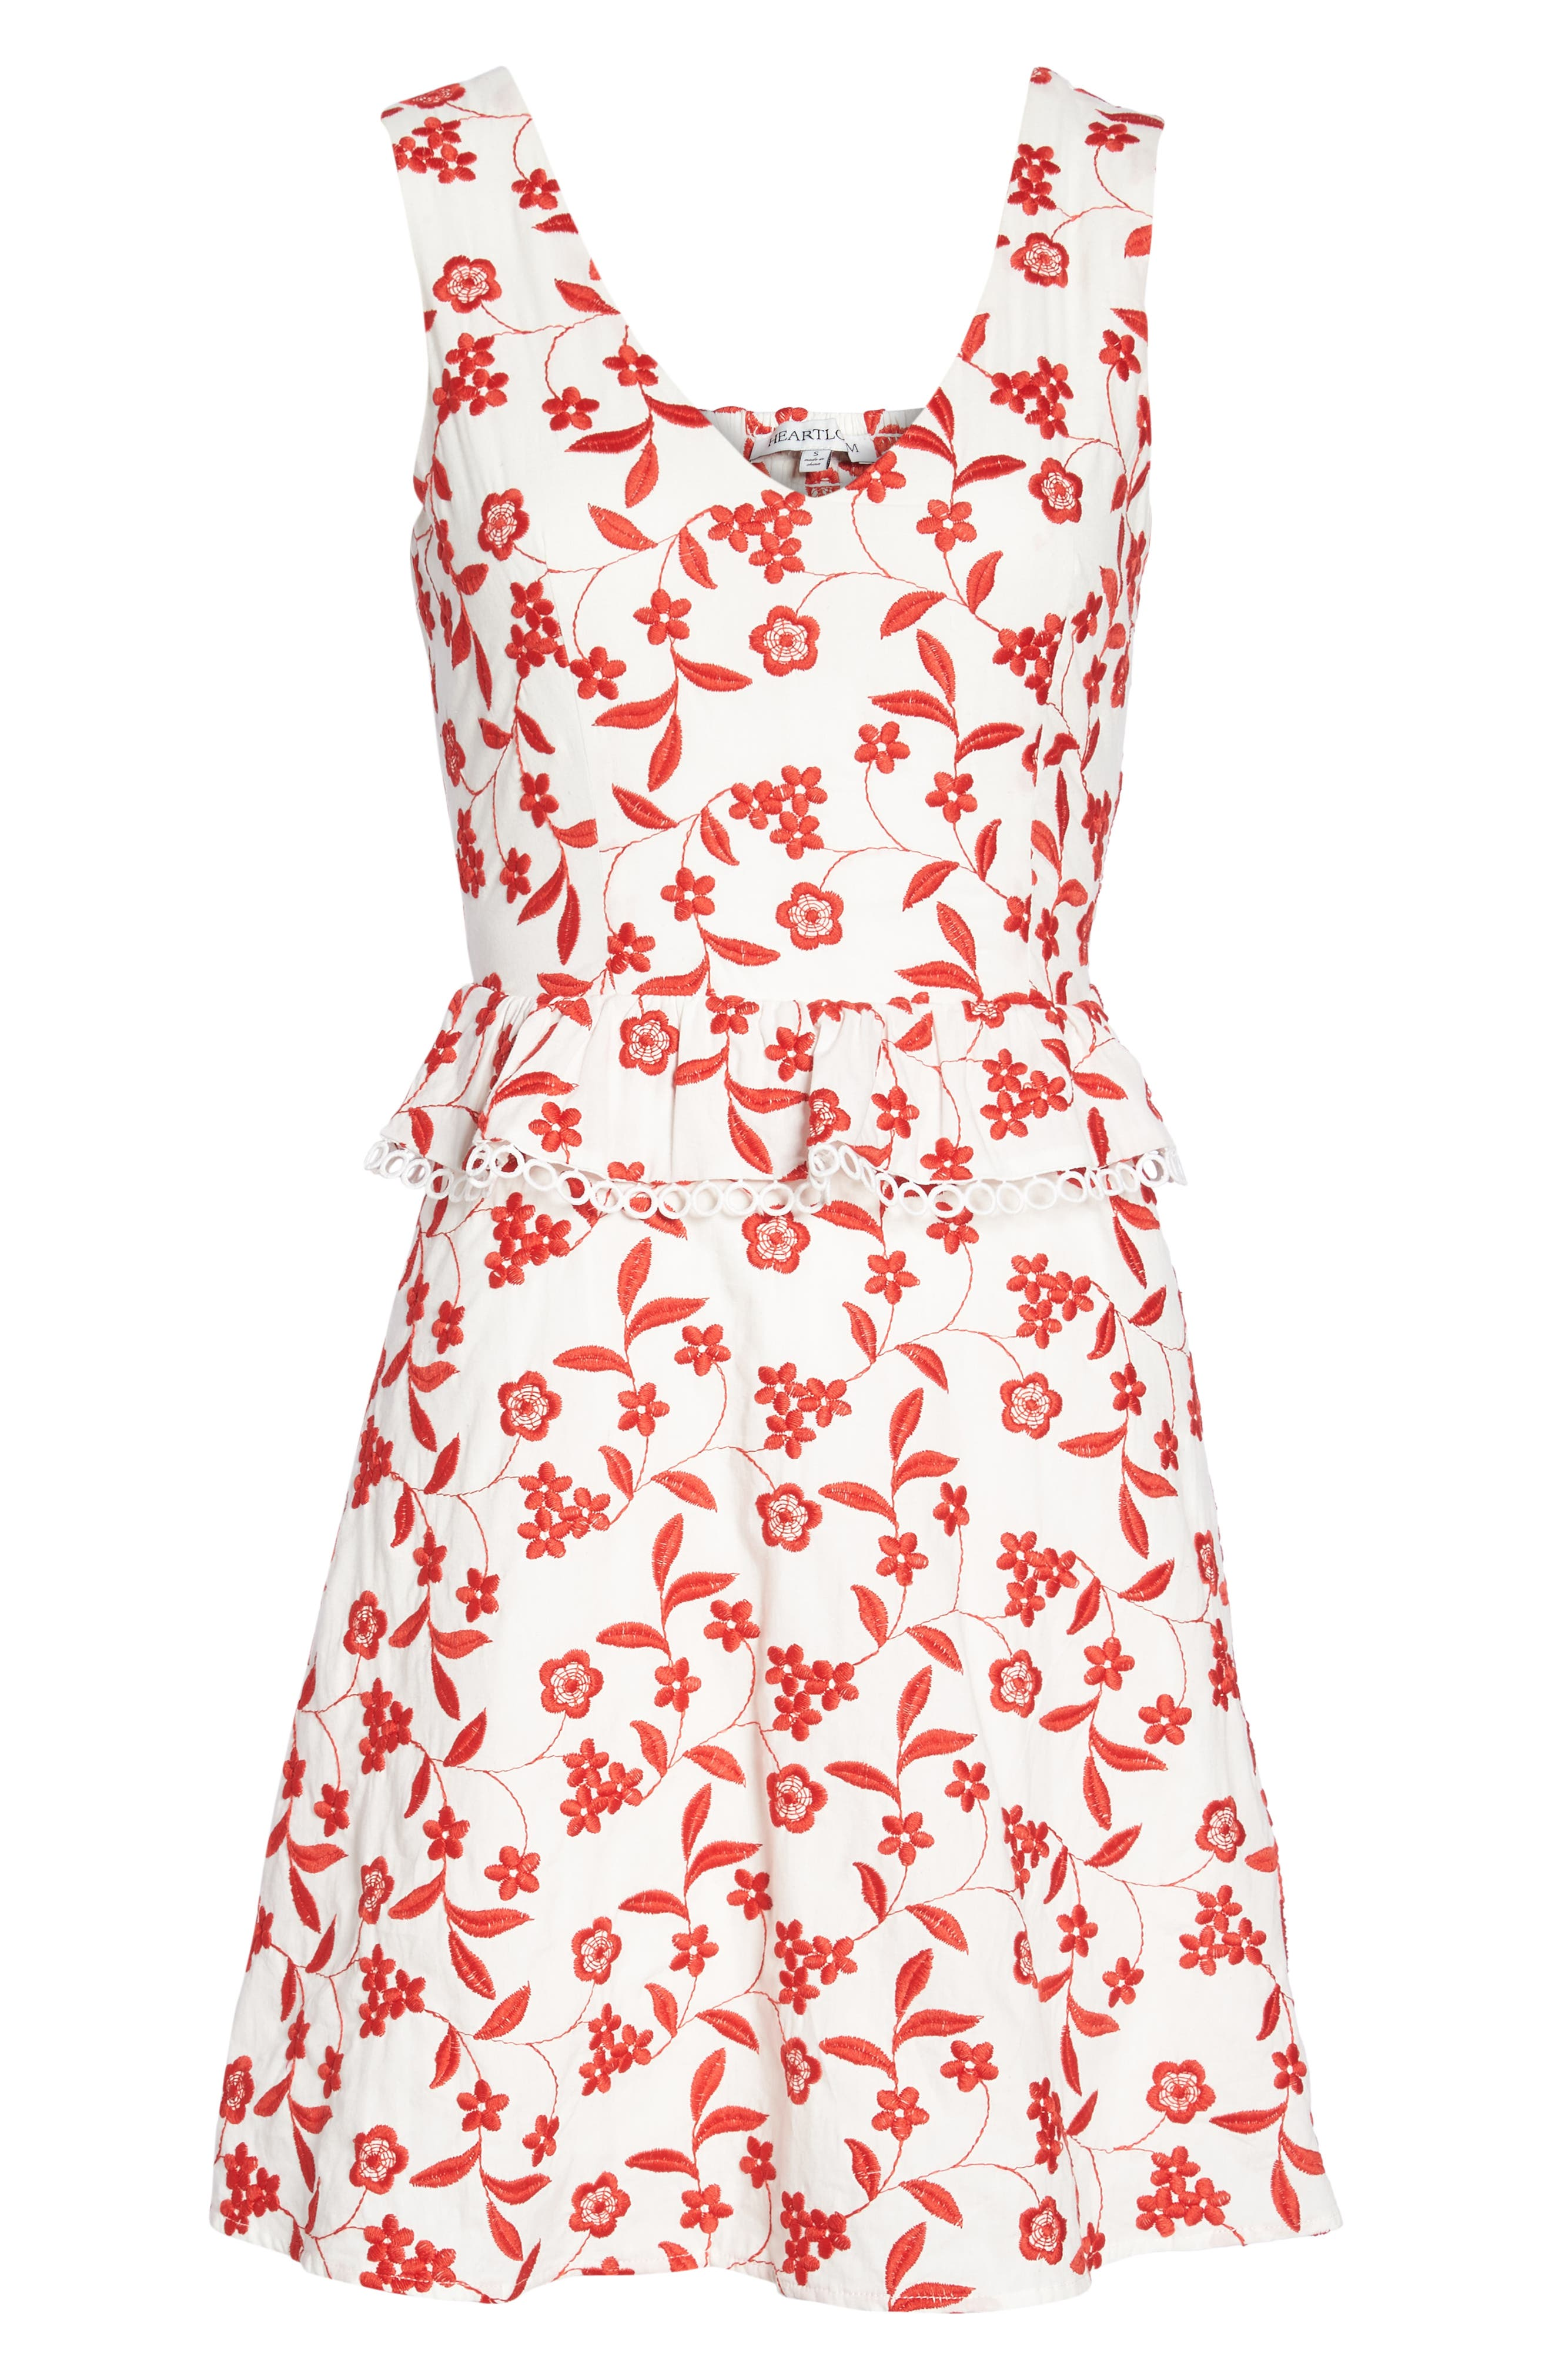 Aubrey Embroidered Cotton Dress,                             Alternate thumbnail 7, color,                             Flame